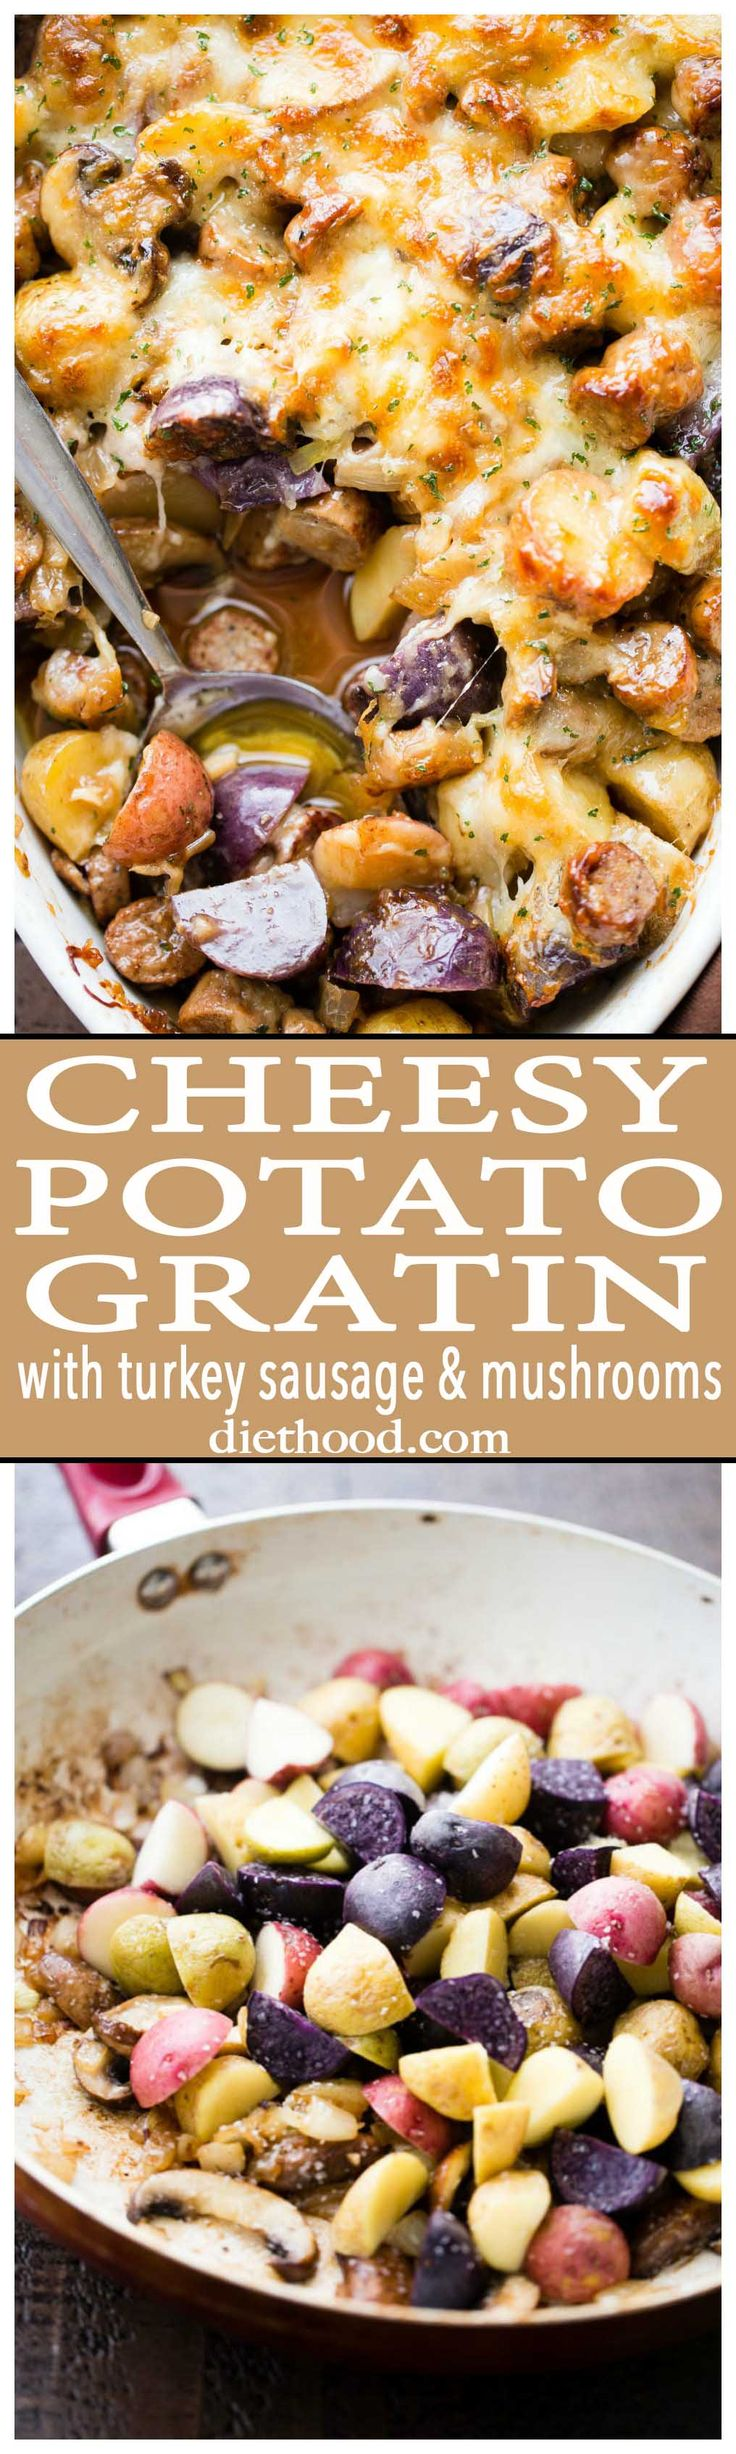 Cheesy Potato Gratin with Turkey Sausage and Mushrooms - An amazing side dish with potatoes, turkey sausage, and mushrooms baked to a delicious perfection.